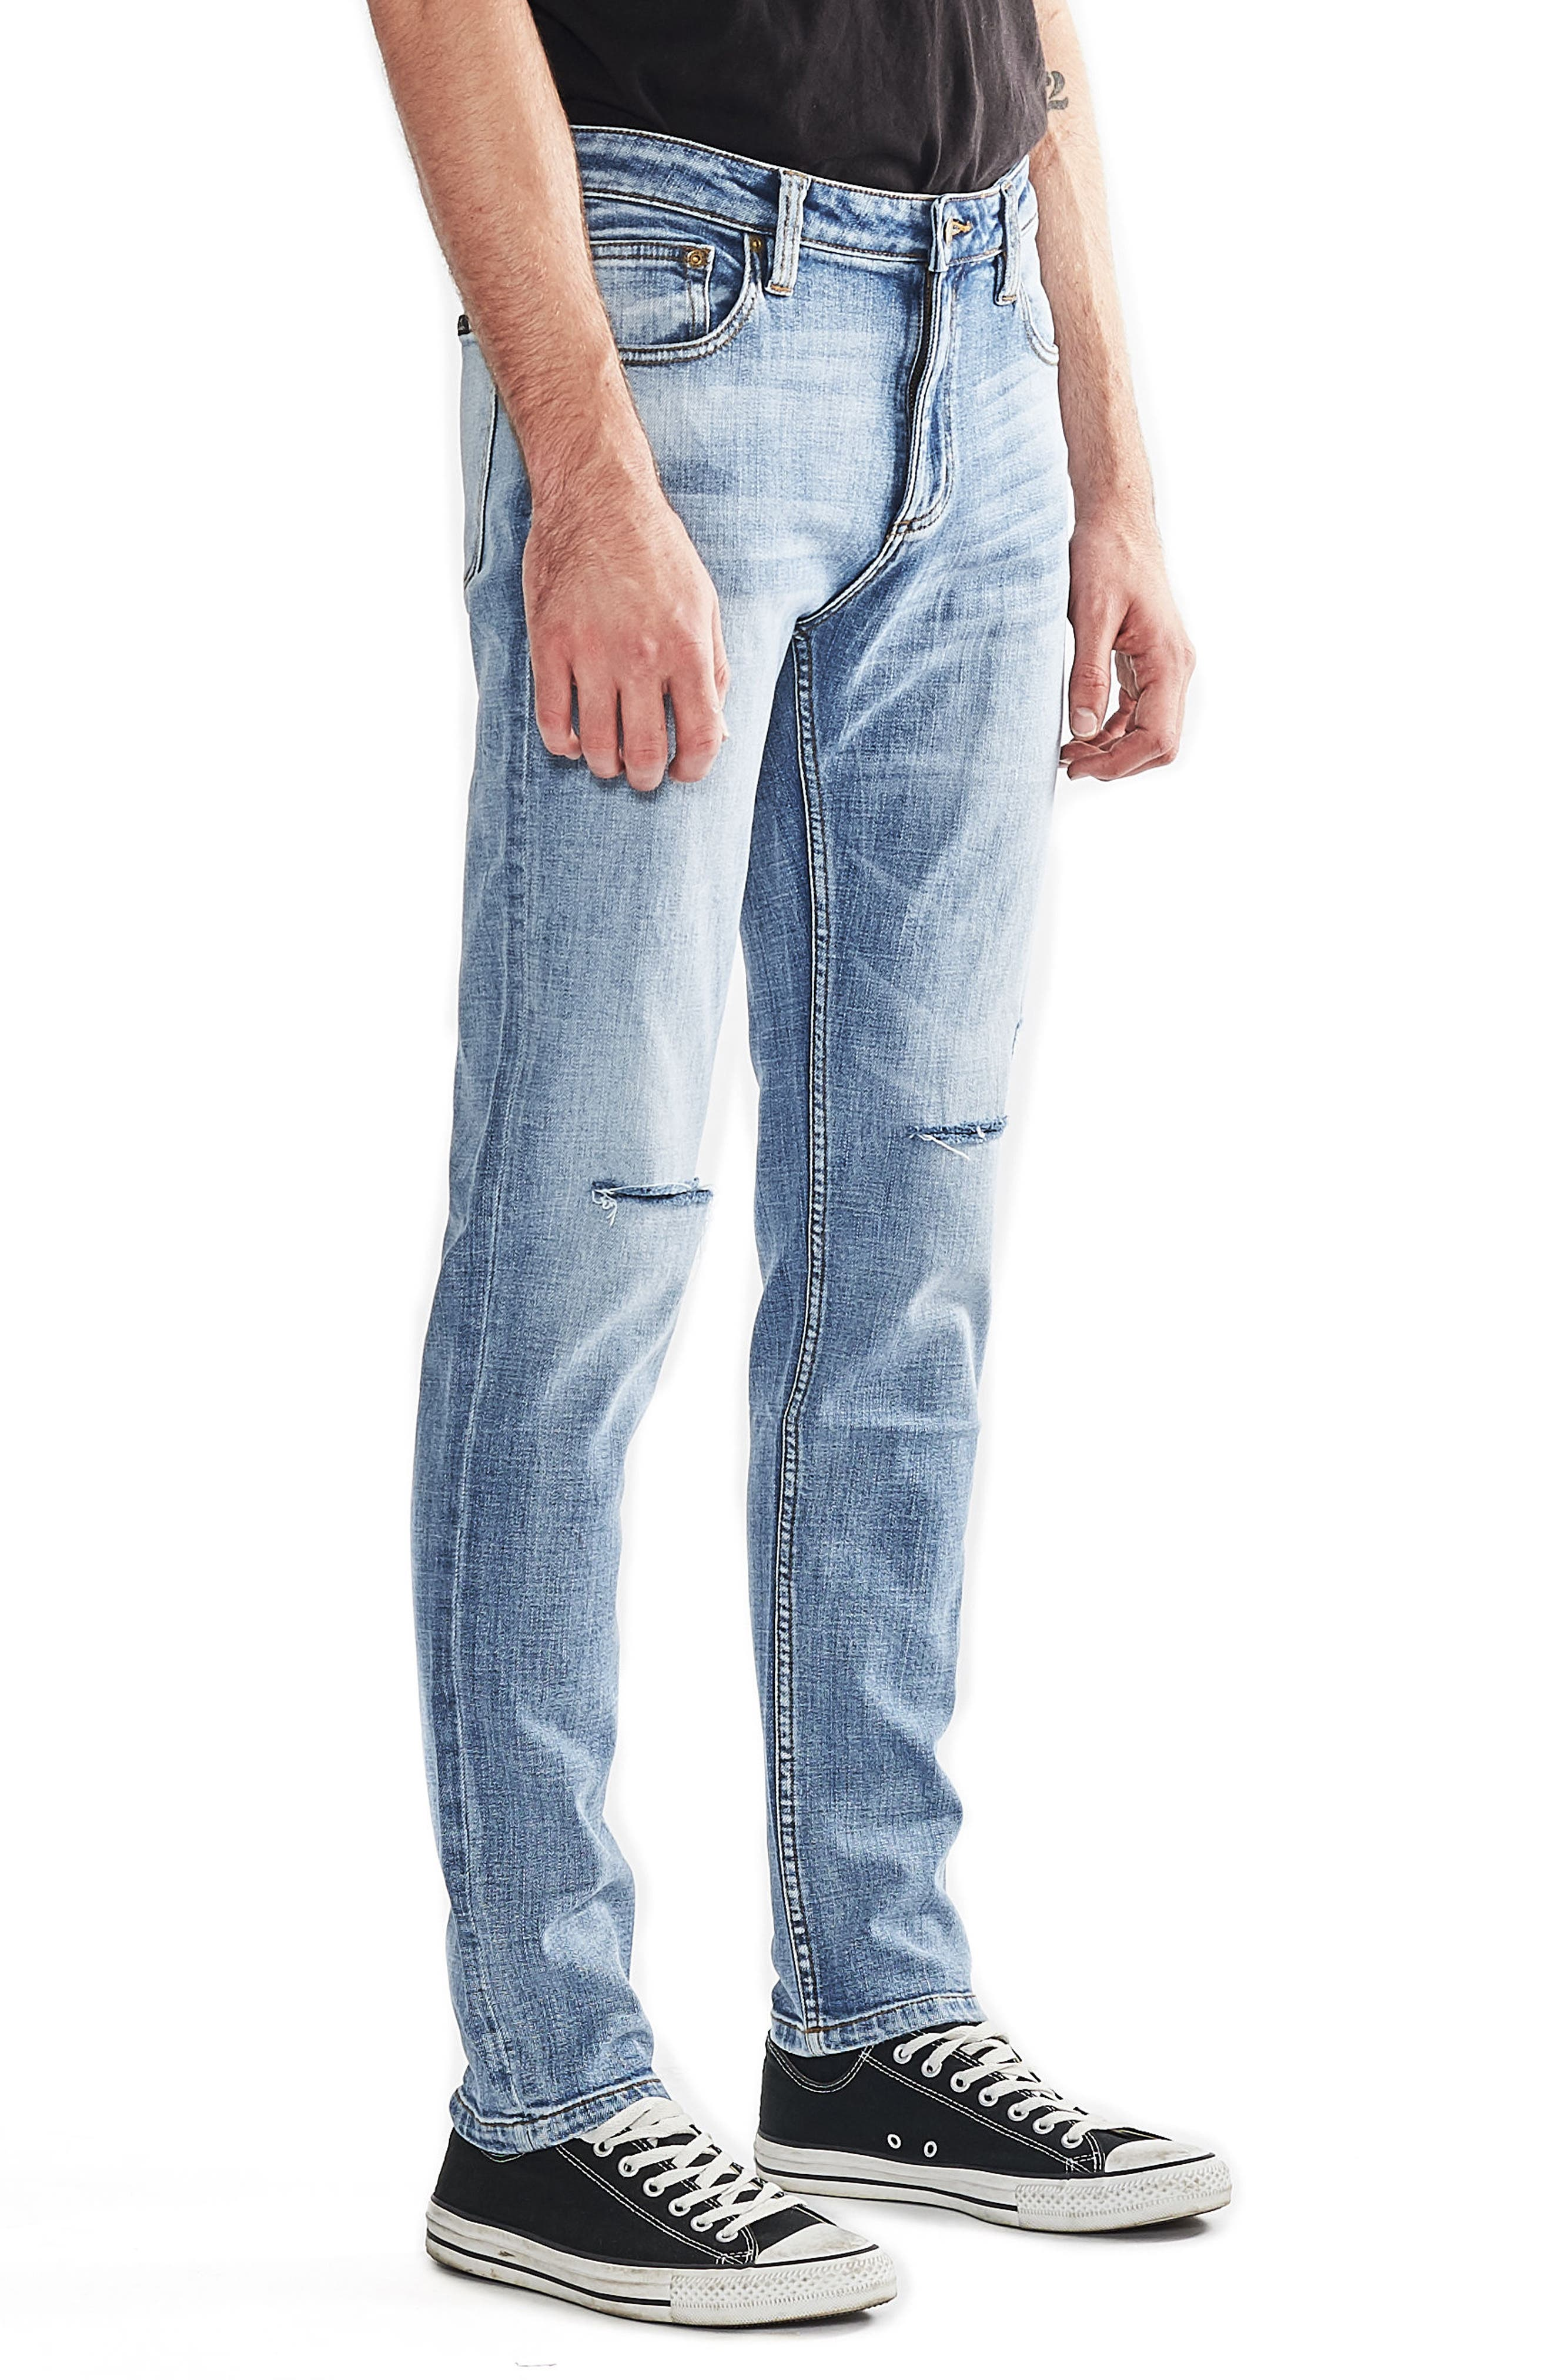 Tim Slims Slim Fit Jeans,                             Alternate thumbnail 3, color,                             Trash Bag Authentic